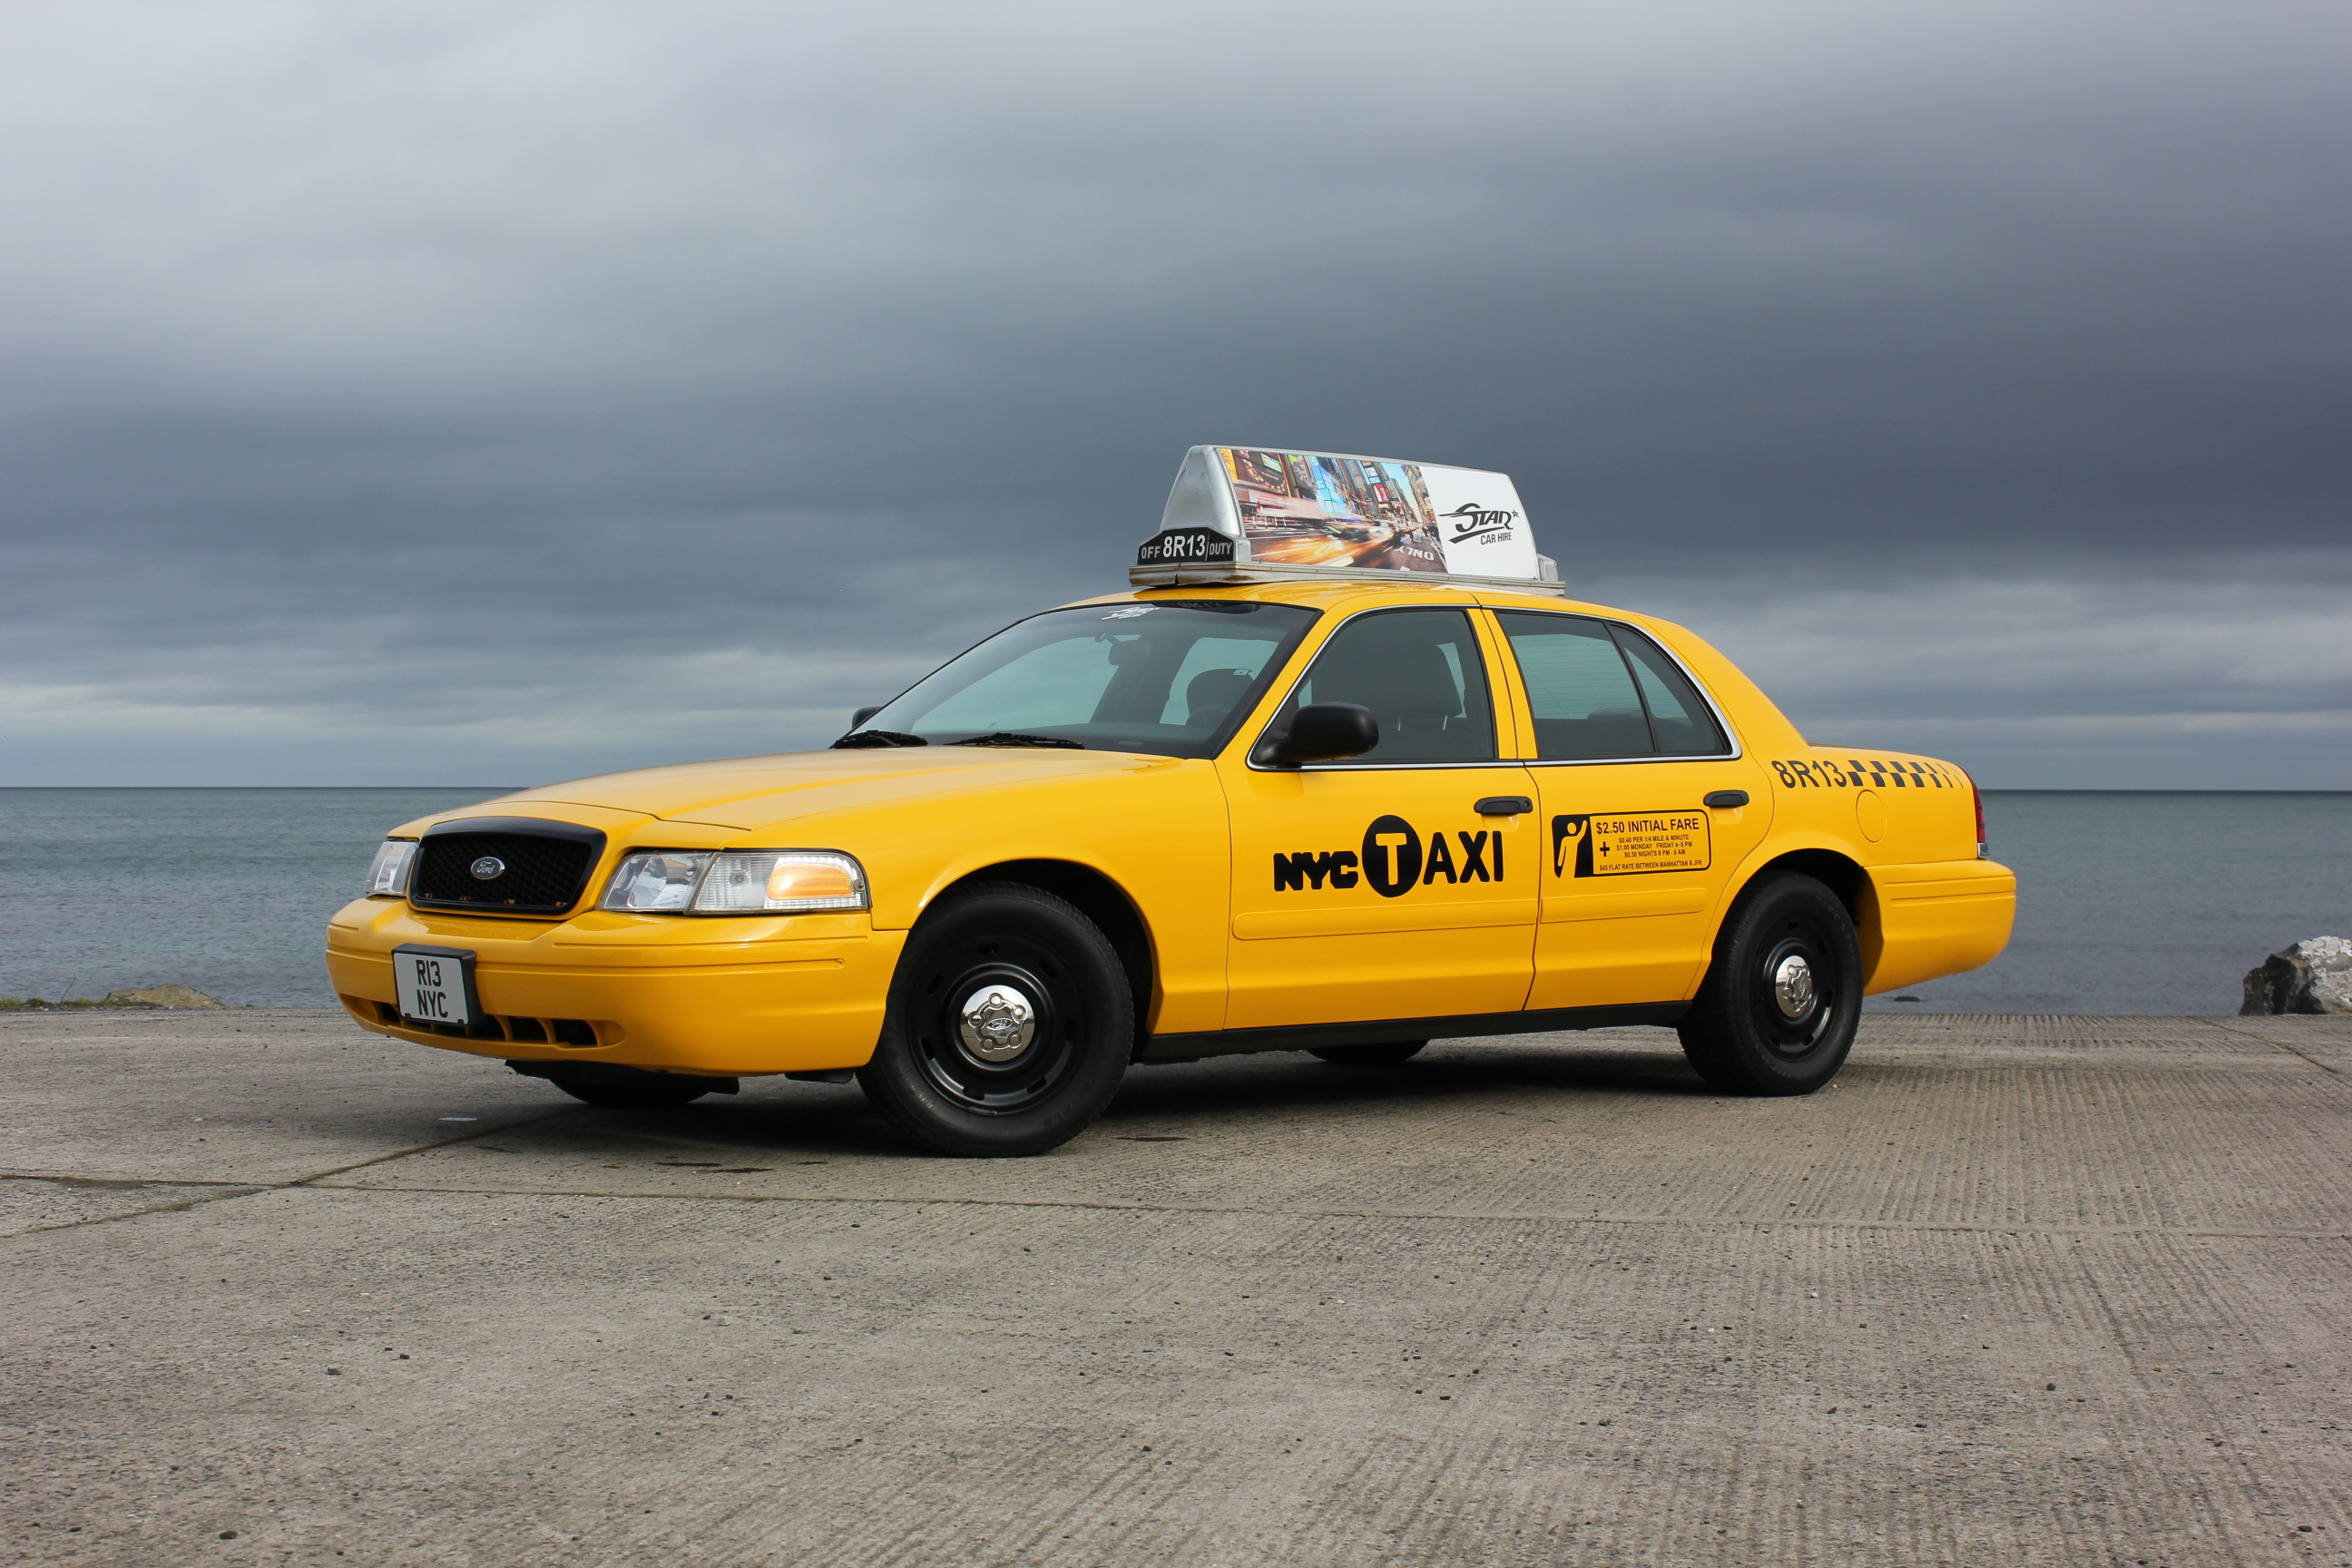 2003 FORD CROWN VICTORIA 'NYC TAXI'